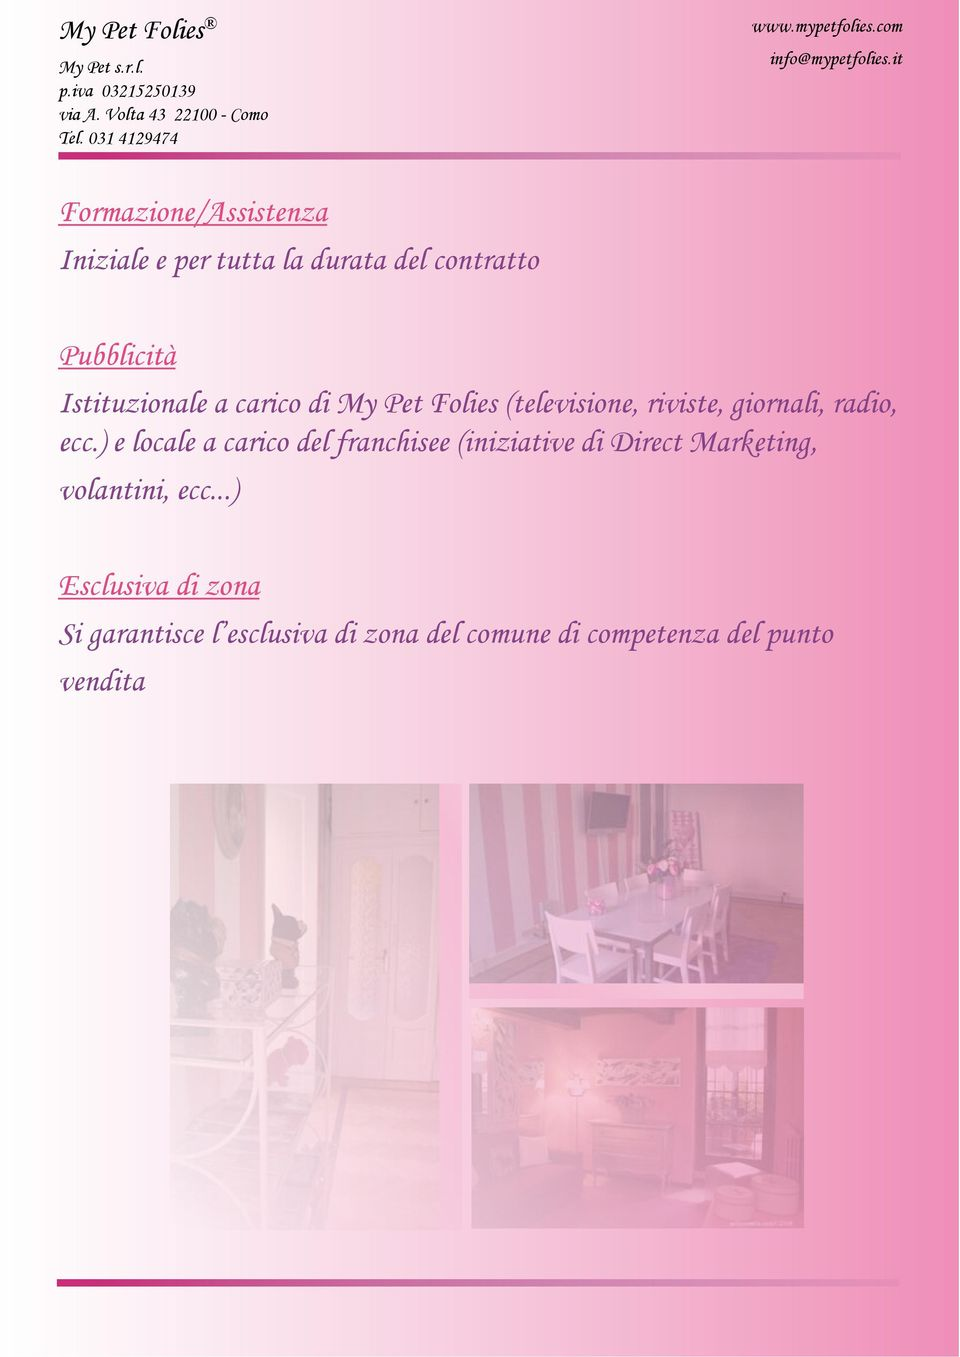 ) e locale a carico del franchisee (iniziative di Direct Marketing, volantini, ecc.